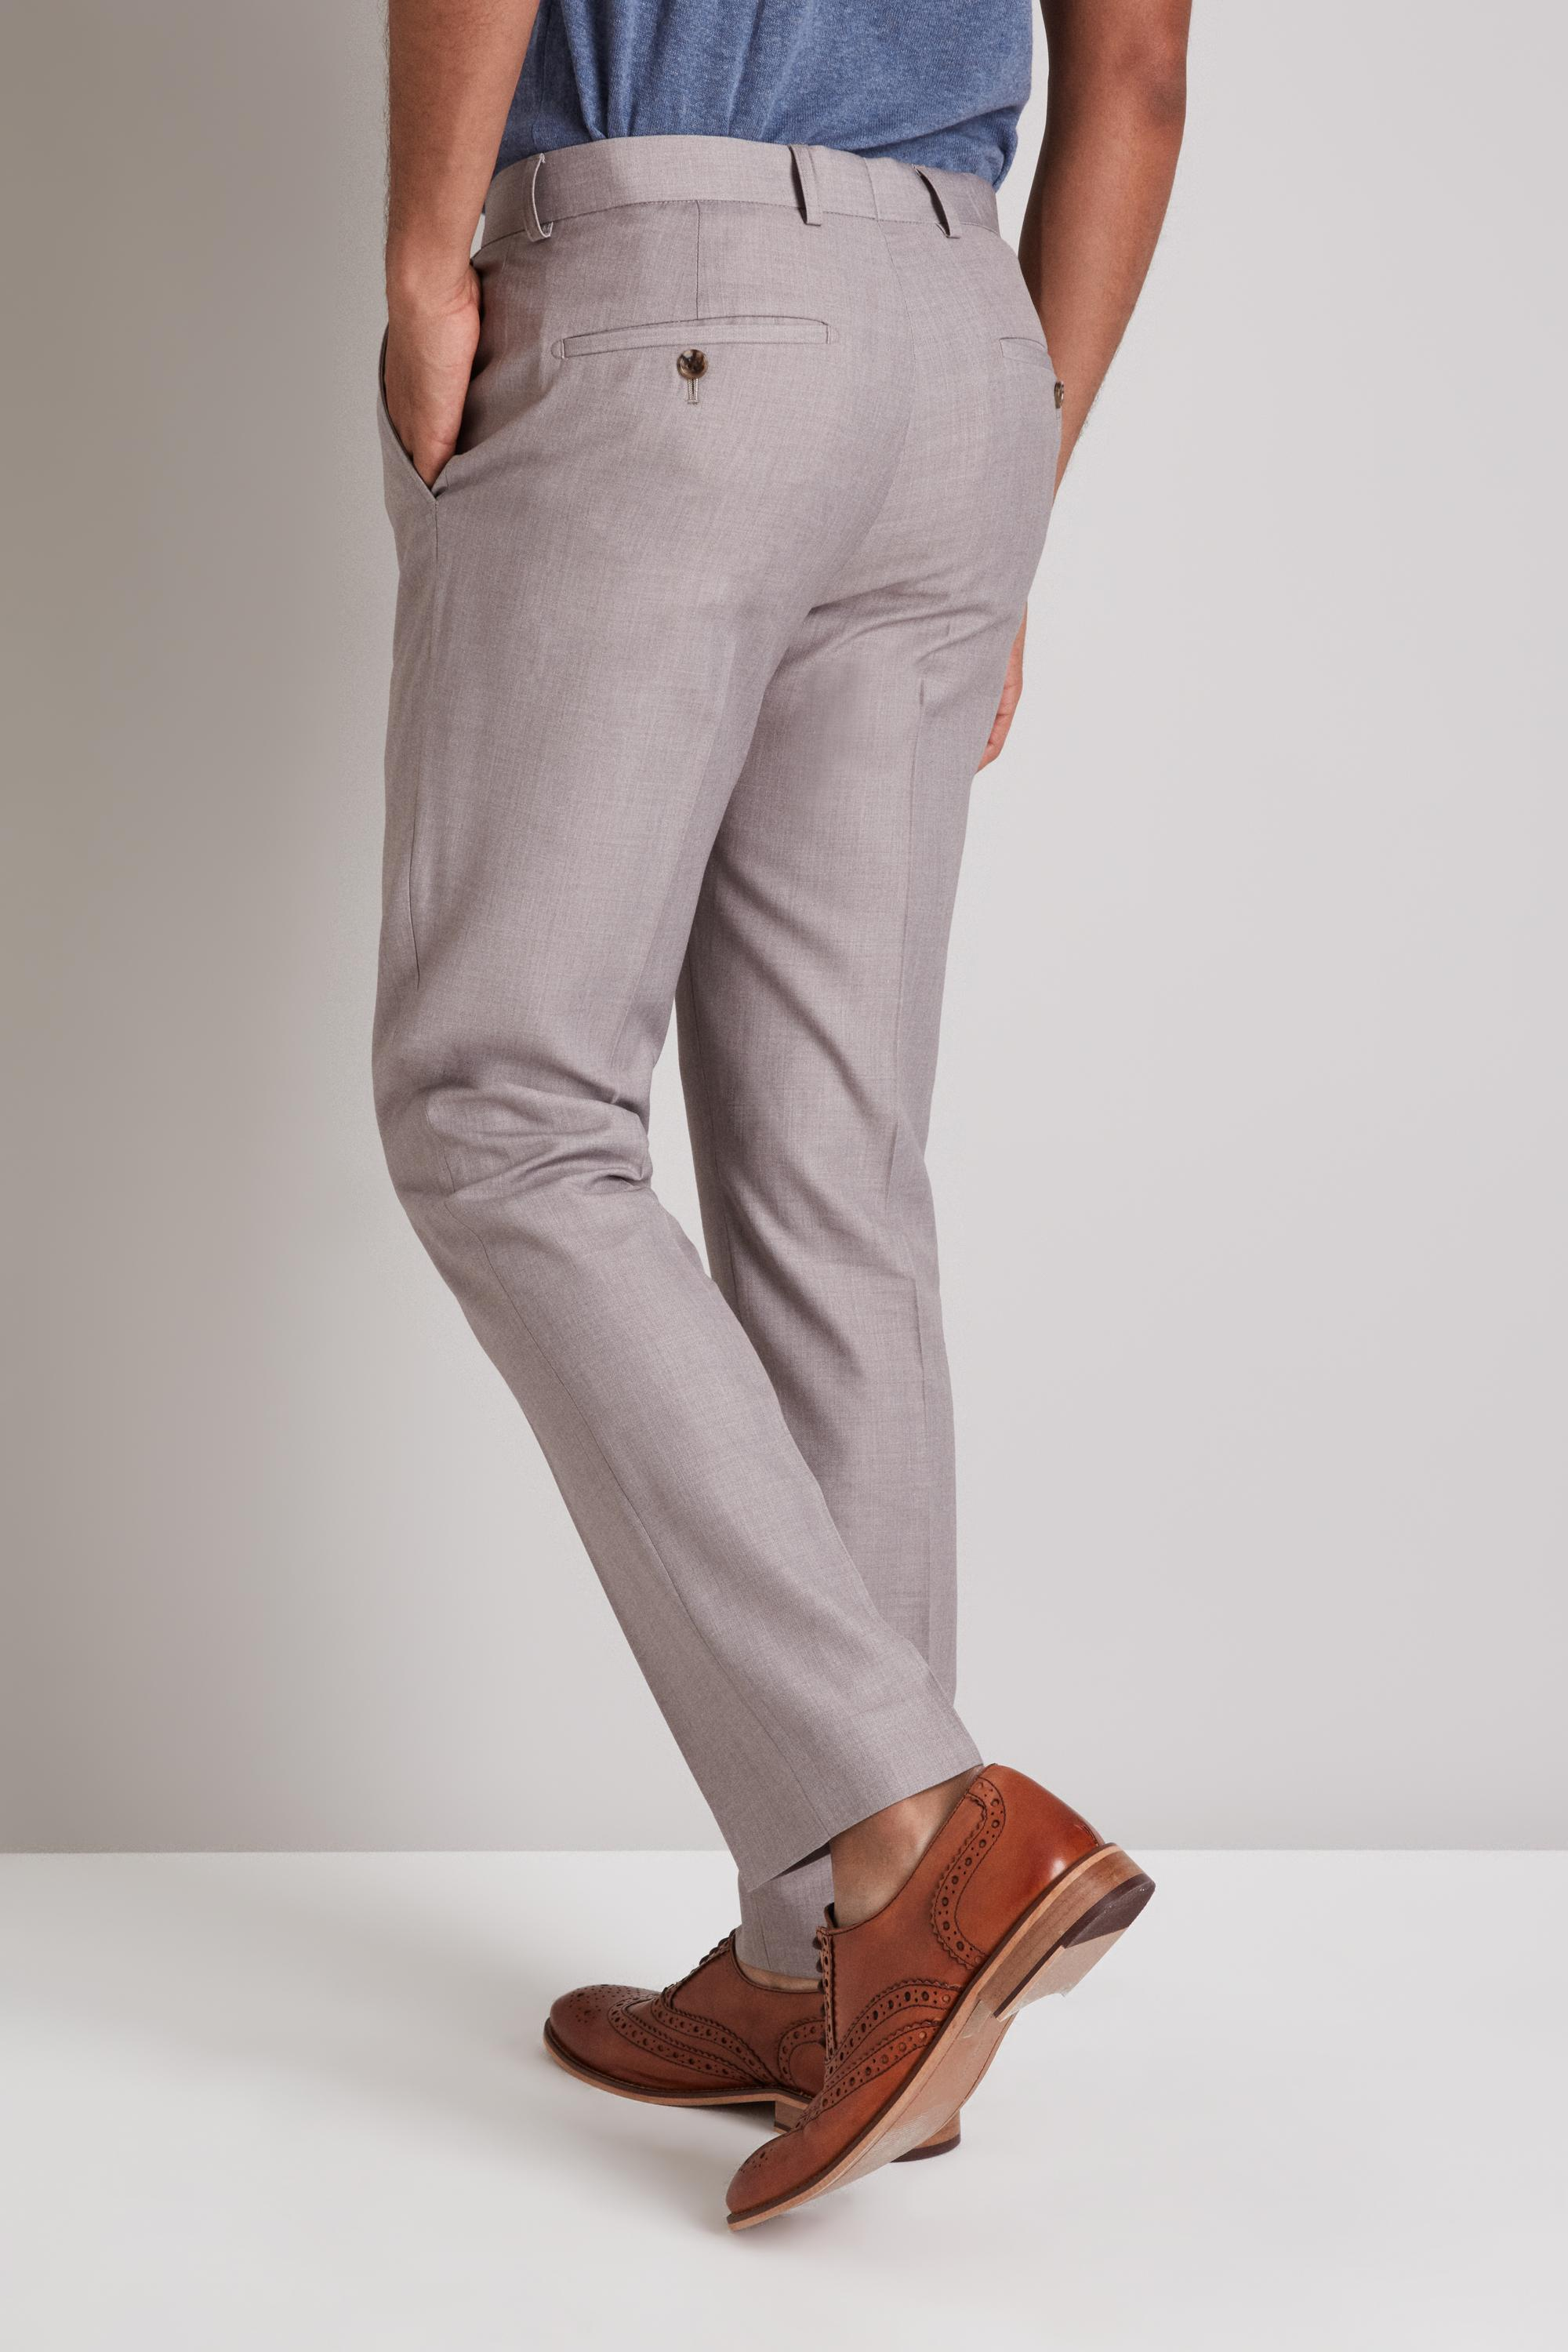 Moss London Synthetic Skinny Fit Taupe Trousers for Men